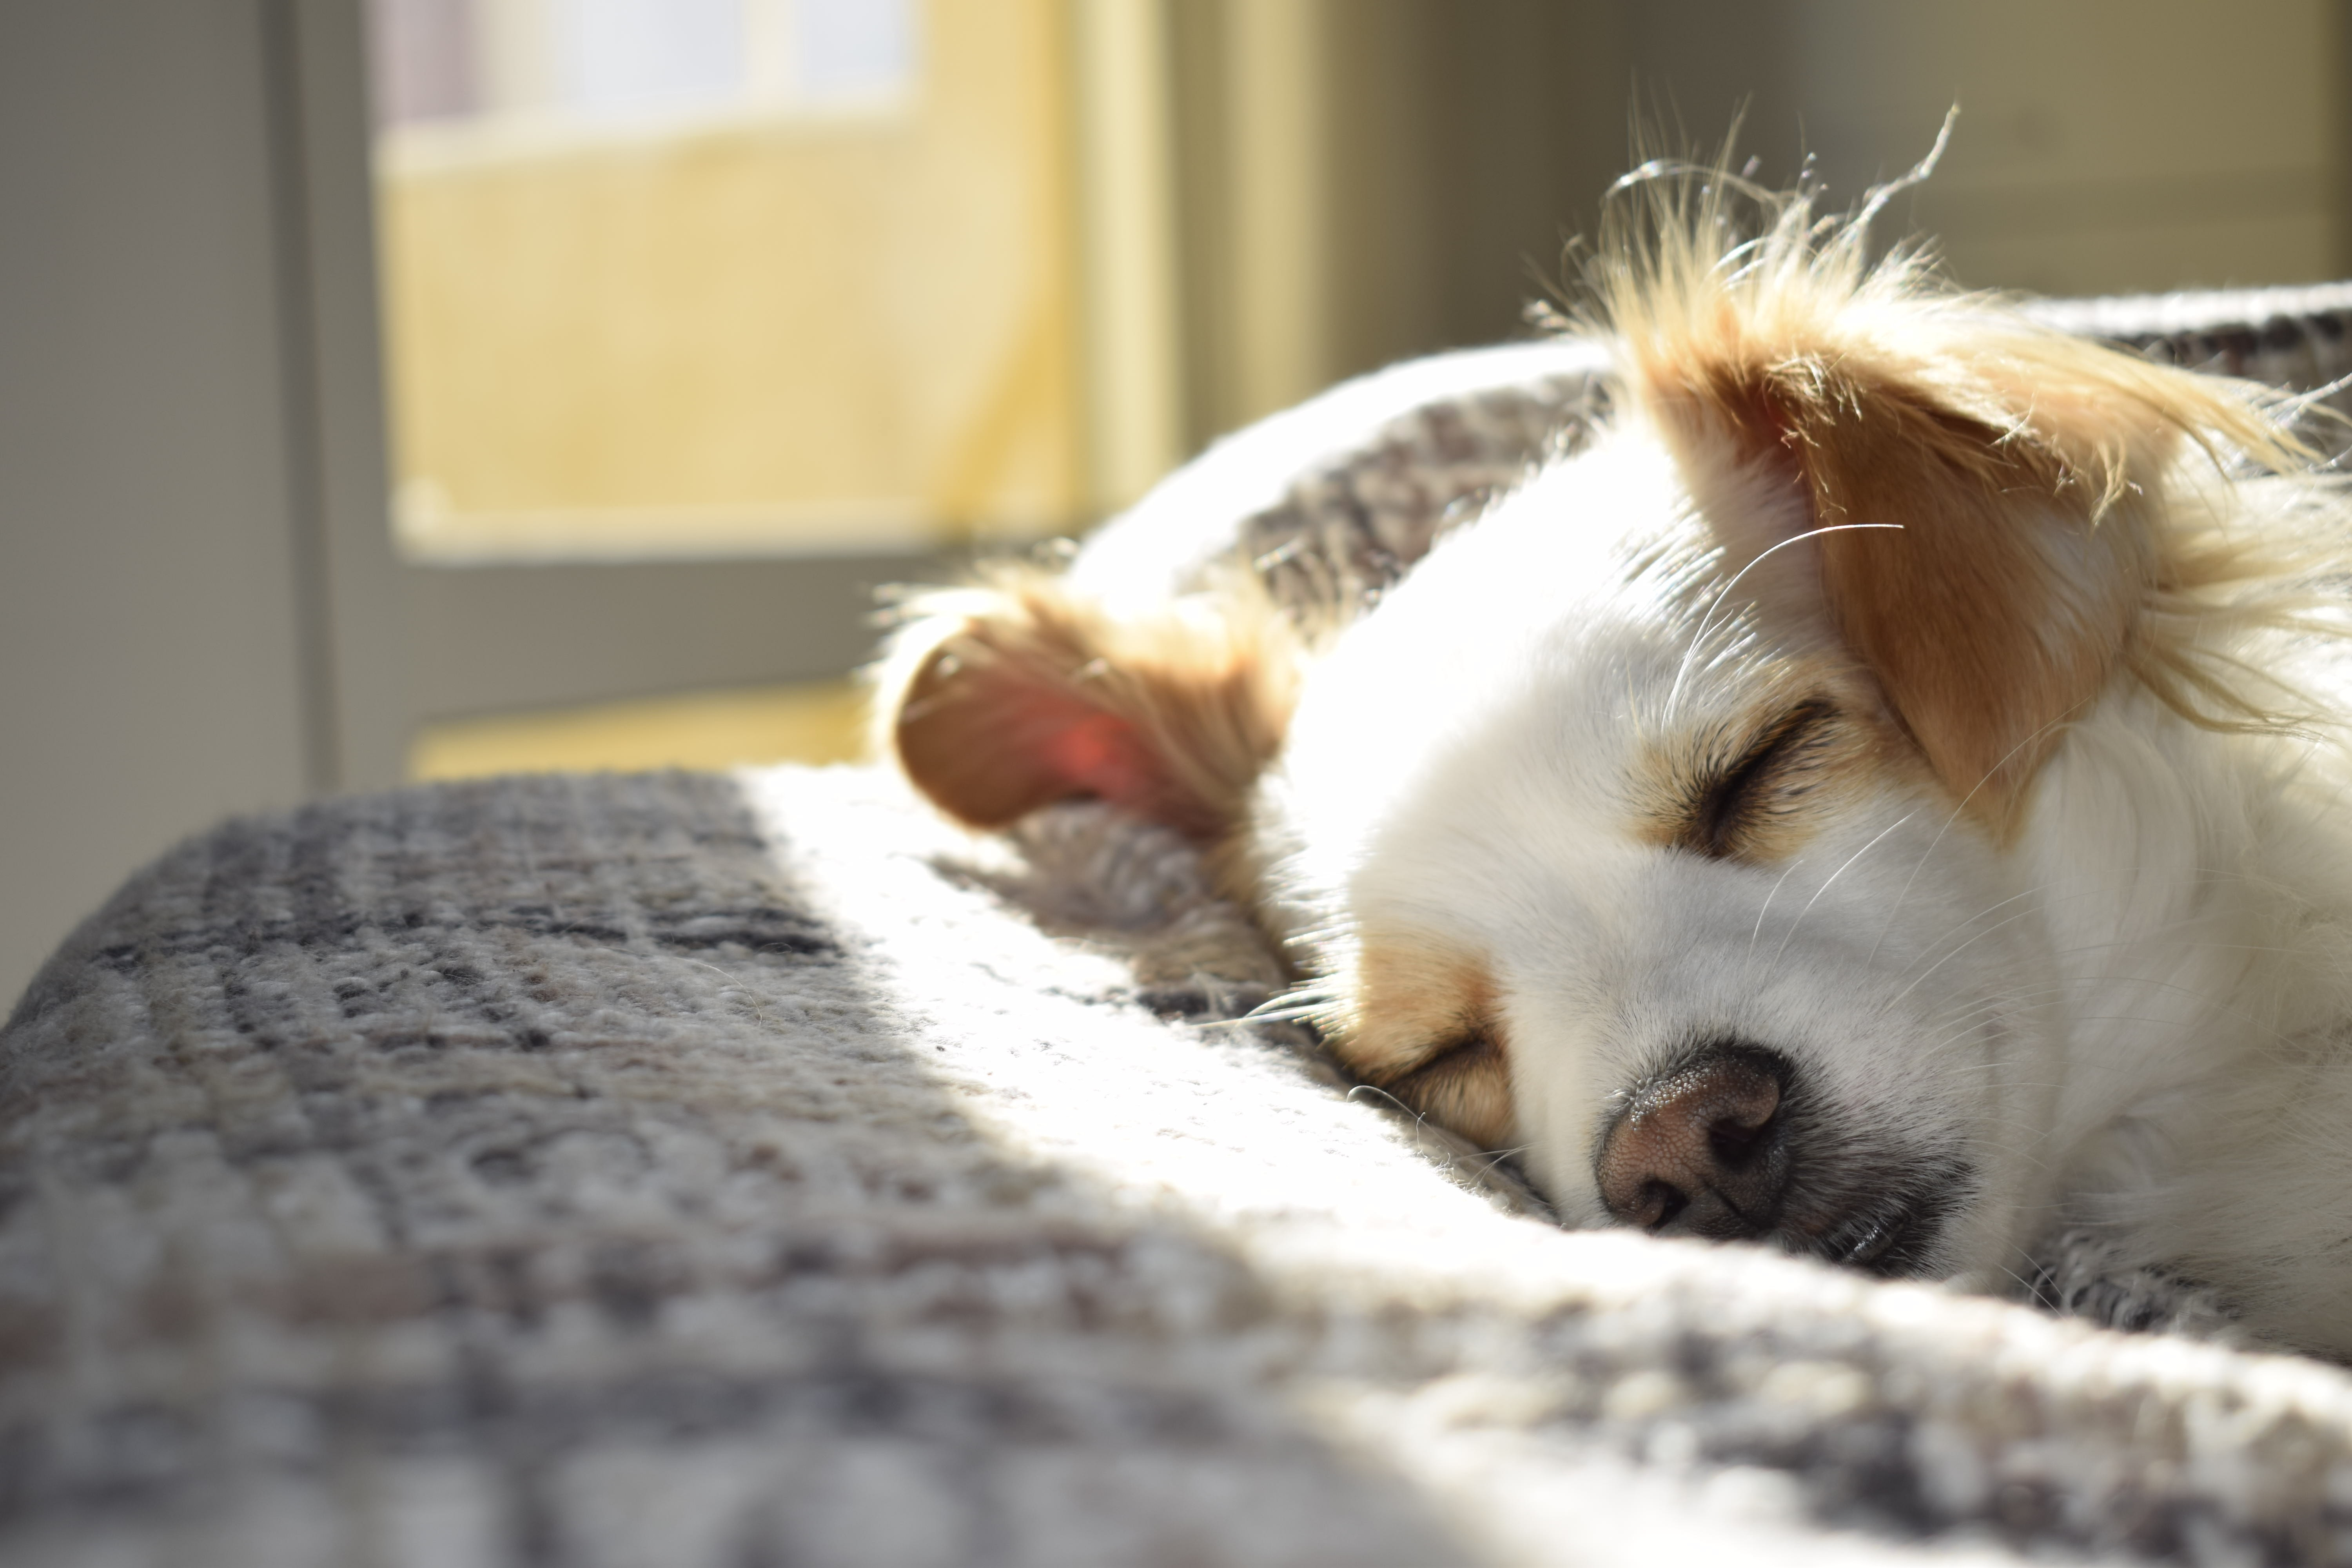 Closeup Photography of Adult Short-coated Tan and White Dog Sleeping on Gray Textile at Daytime, Mammal, Young, Sun, Sleepy, HQ Photo